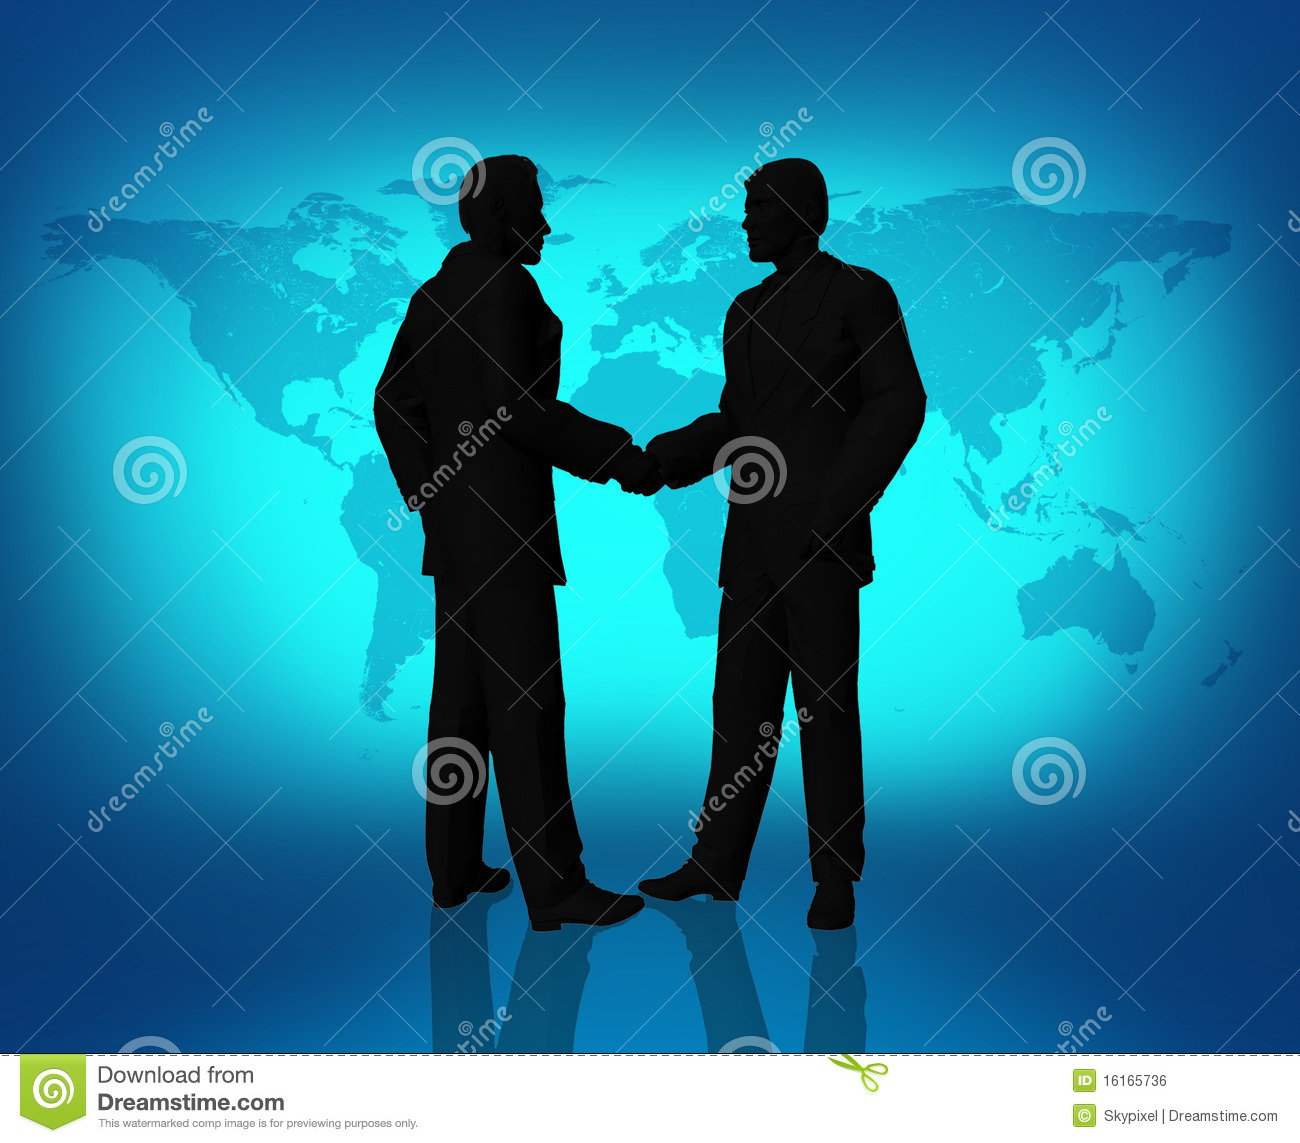 Global Business People Agreement Royalty Free Stock Image